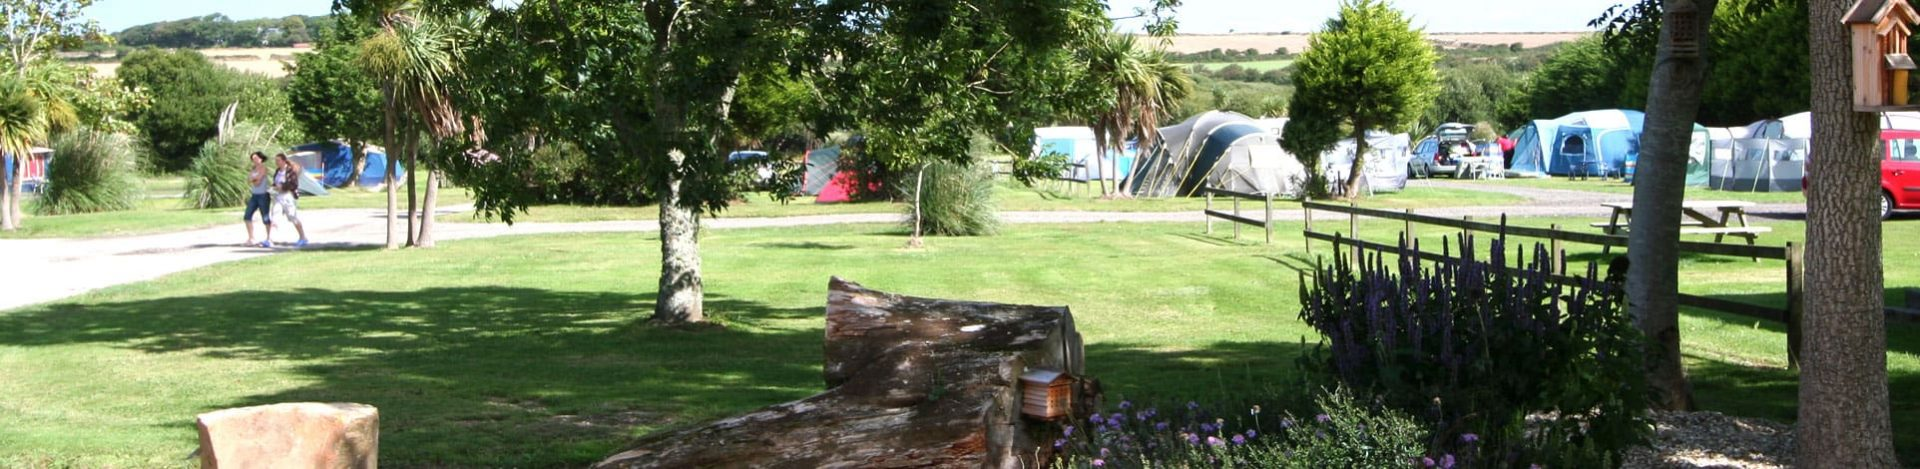 Holiday park campervan pitches